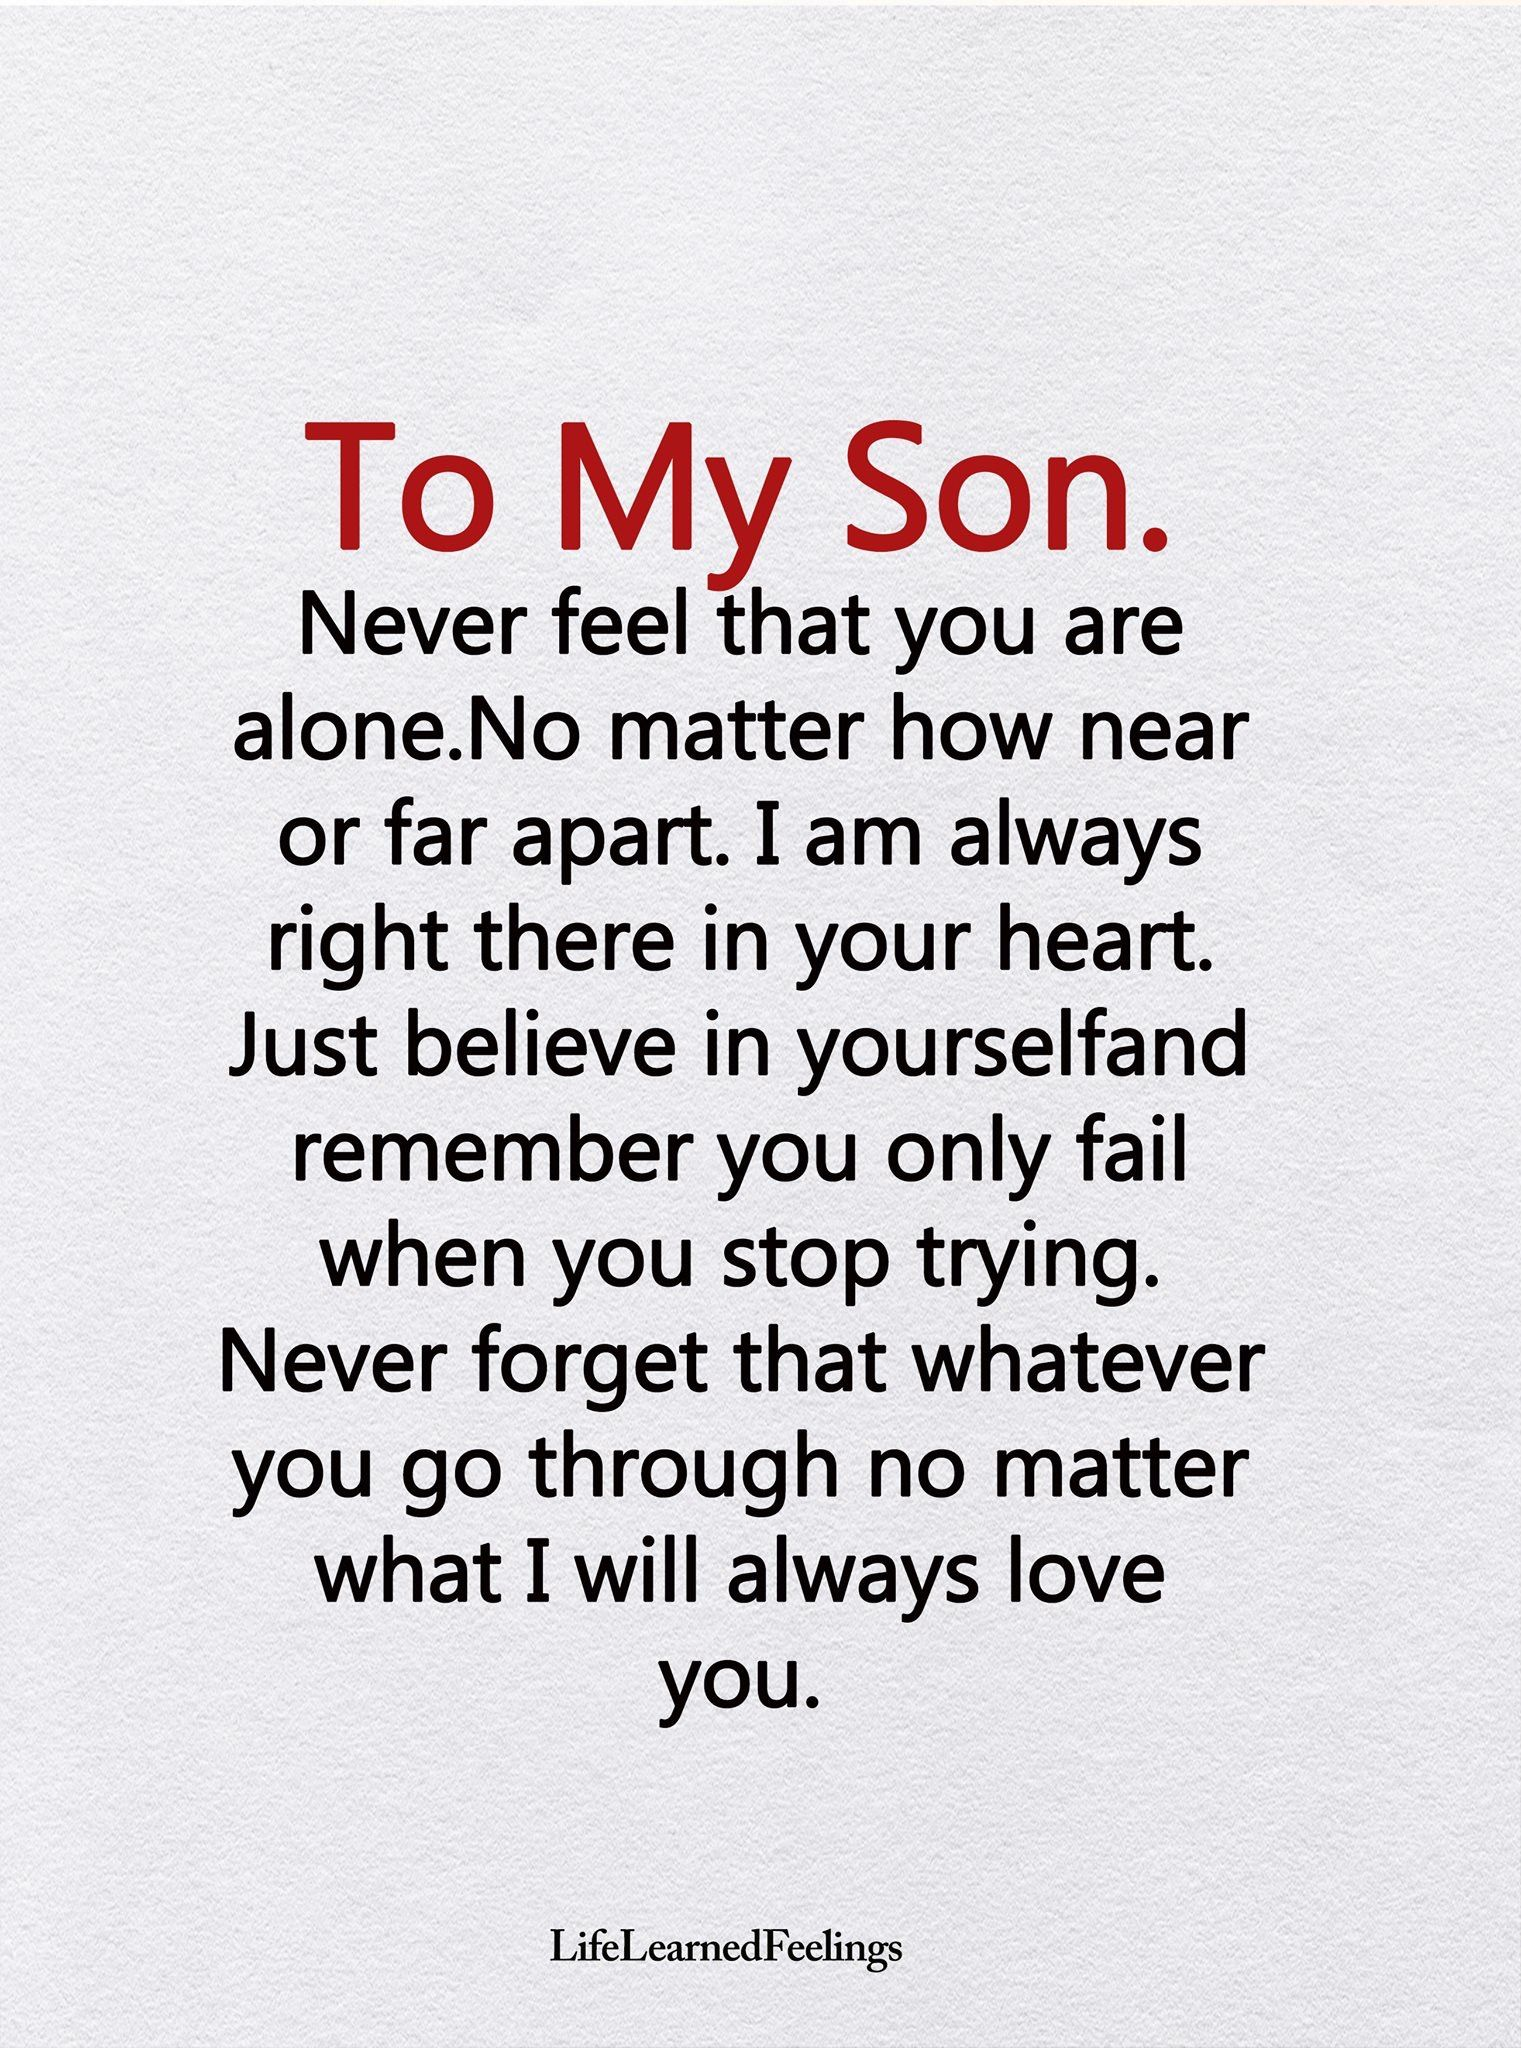 Pin By Sabrina Jandrasits On For My Sons Mothers Love Quotes Son Quotes From Mom Mother Quotes